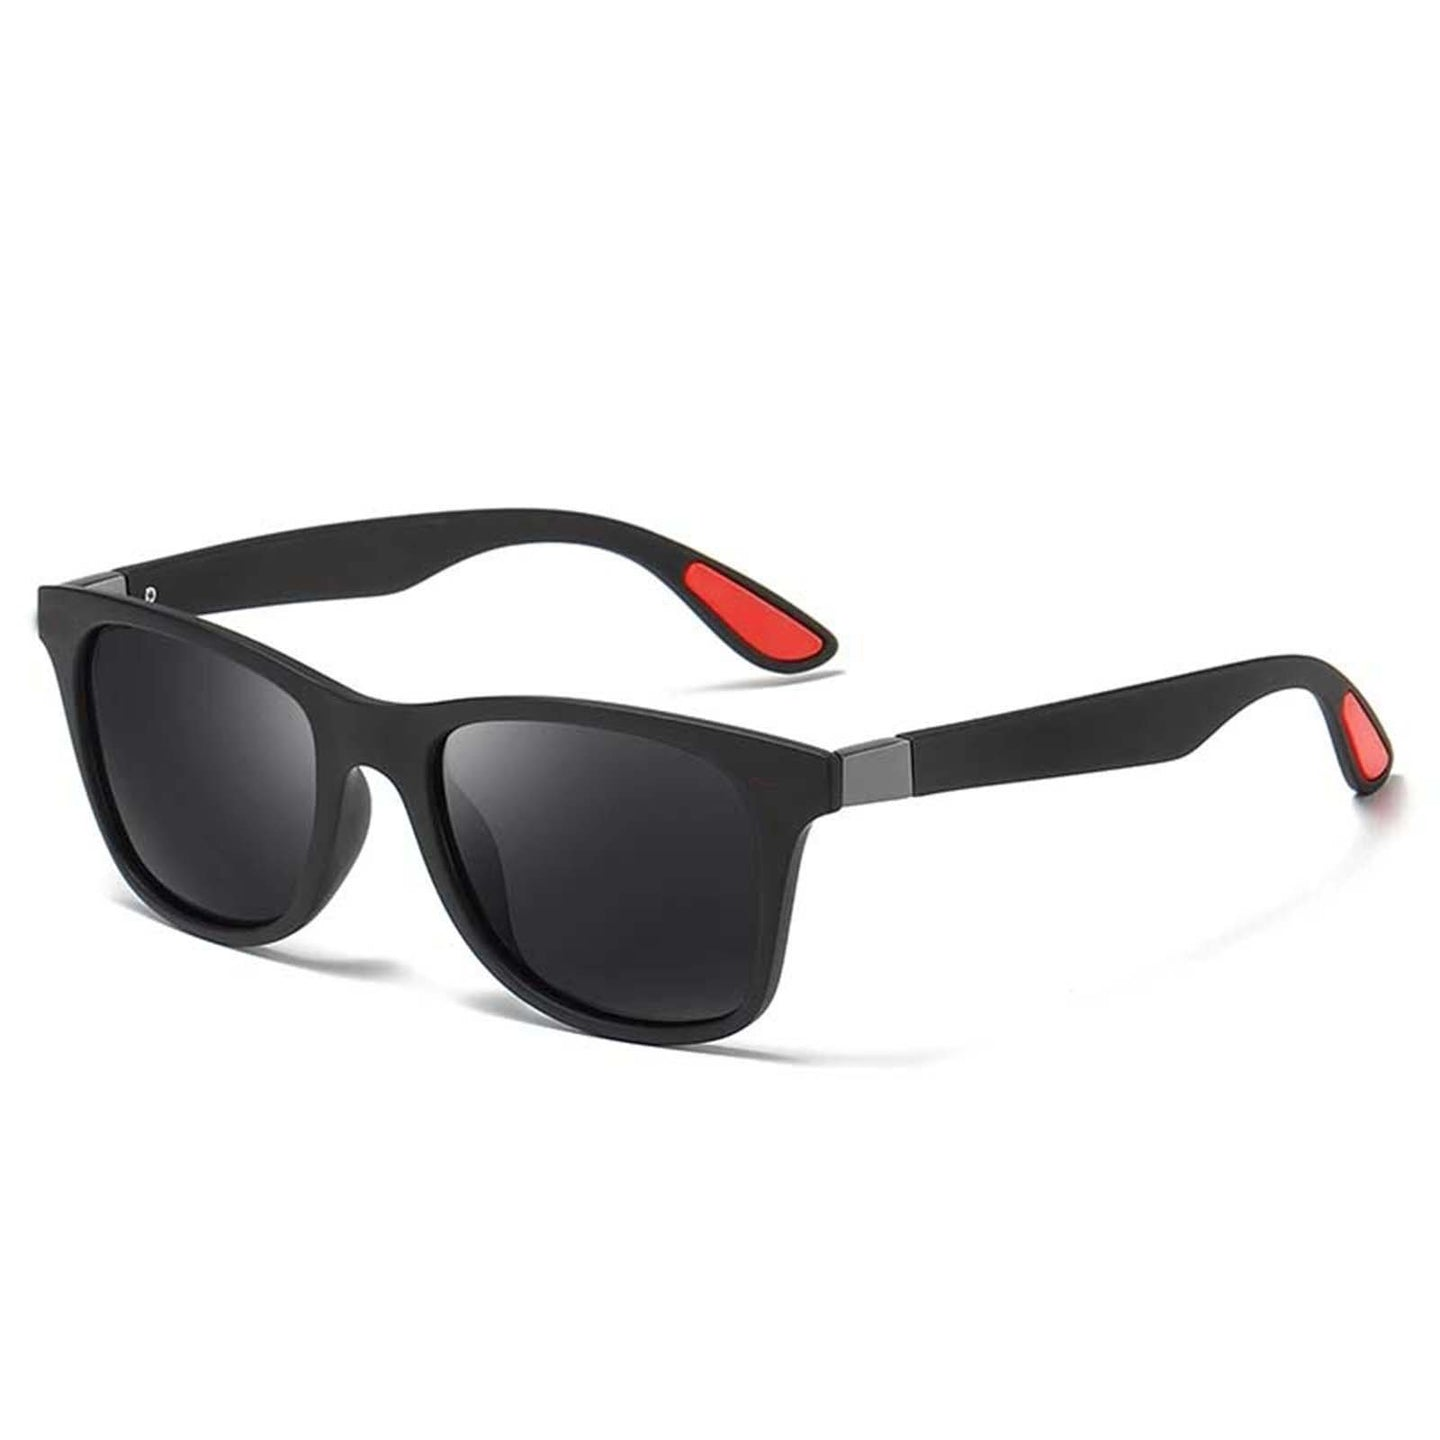 RB Wayfarer Classic Sunglasses For Men-Export Fit